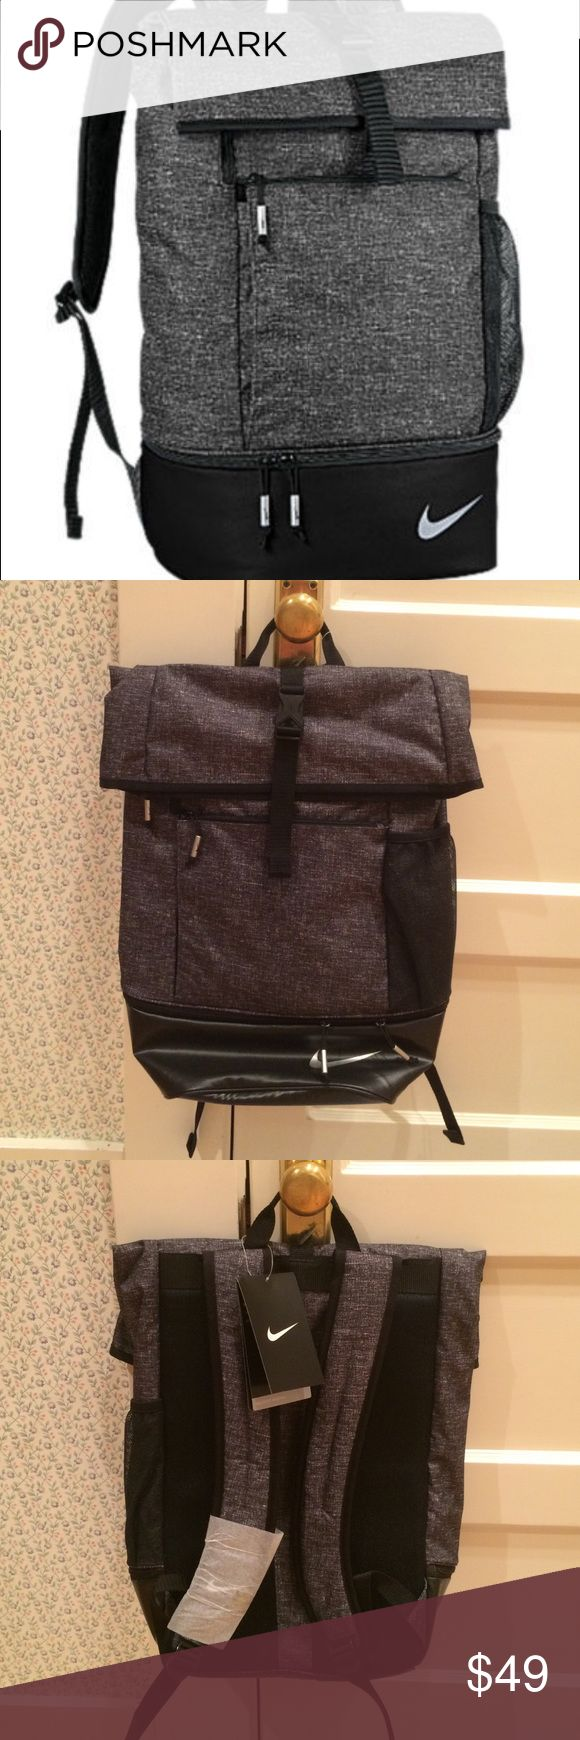 Nike Sport Fold-Top Backpack NWT Nike sport backpack- large capacity, fold-top with buckle closure and water resistant. Separate bottom compartment for shoes or anything you'd like to be easily accessible. Multiple accessory pockets and water bottle holder. Dark charcoal with black straps. Brand new w/ tags! Great for everyday or sports supplies- big enough to be a gym or weekender bag. Nike Bags Backpacks